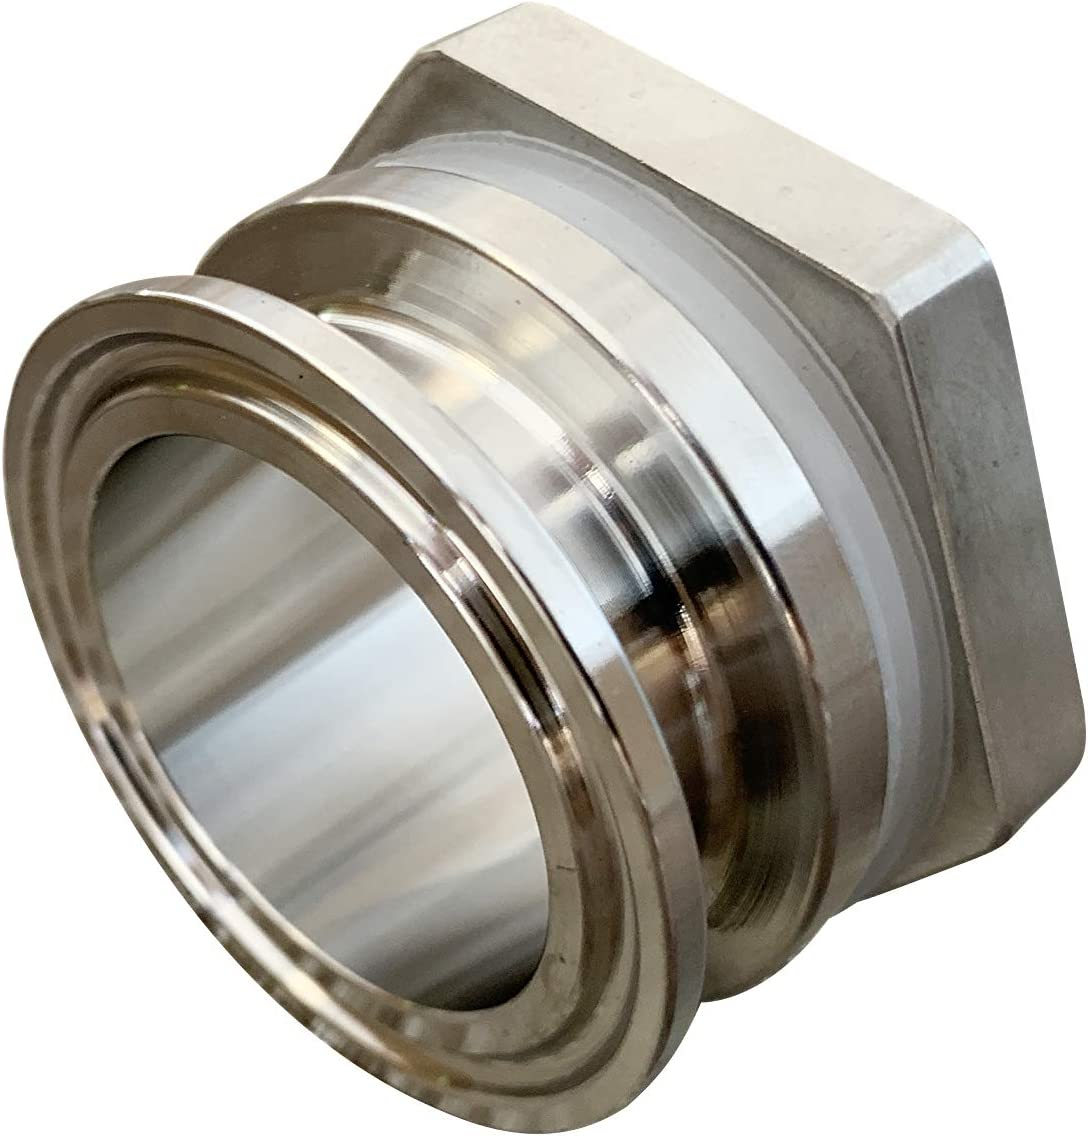 "TRUE Weldless 2"" TC Triclamp Bulkhead Compression Fitting 304 Stainless Steel Homebrew Kettle Bulkhead"